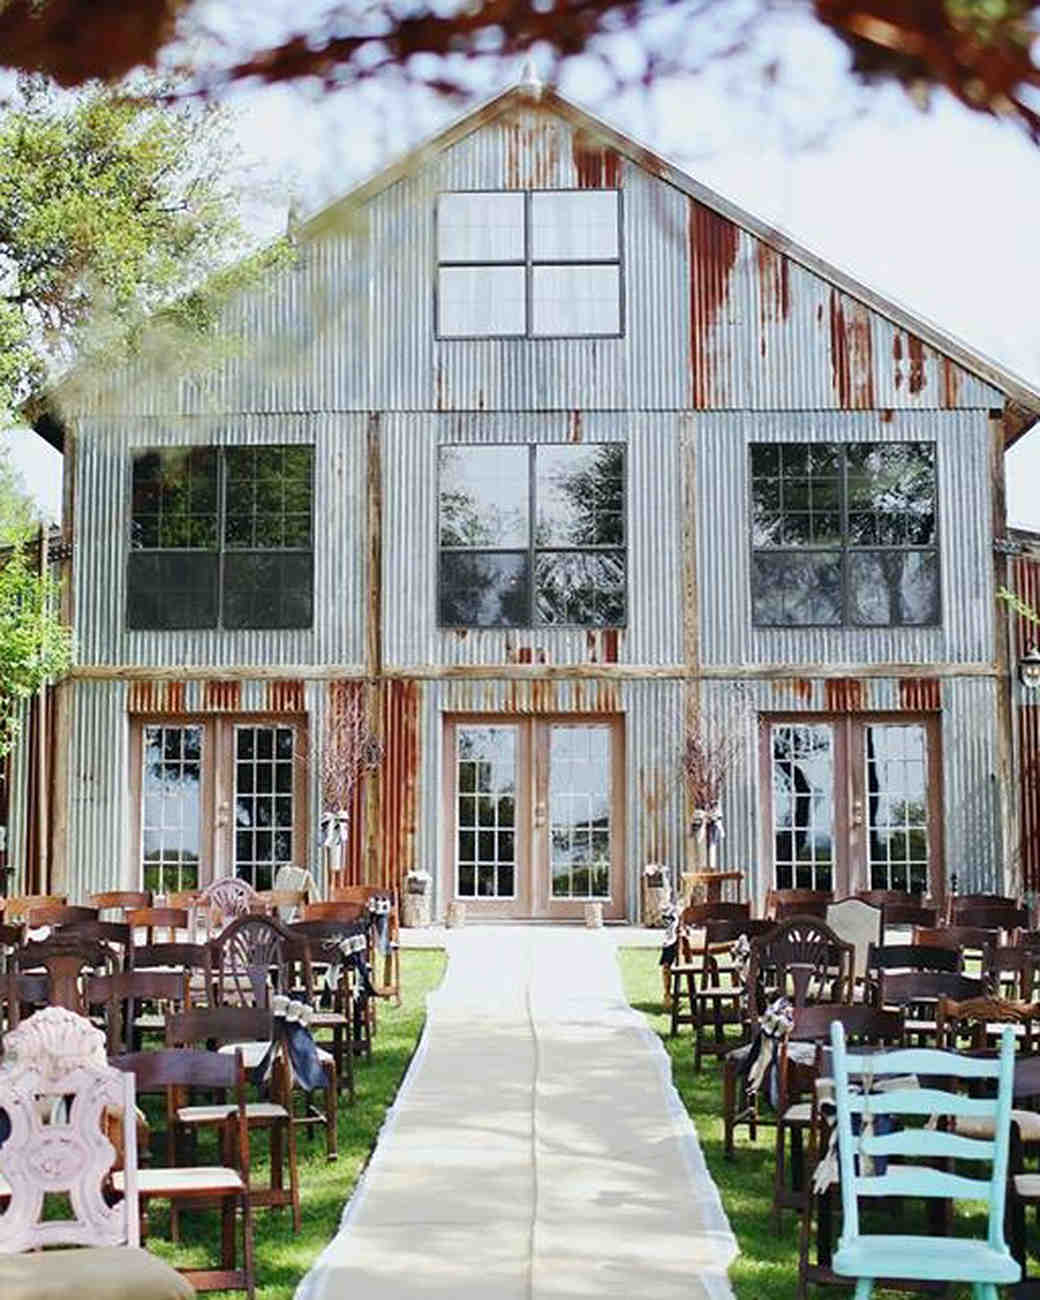 11 Rustic Wedding Venues to Book for Your Big Day | Martha ...